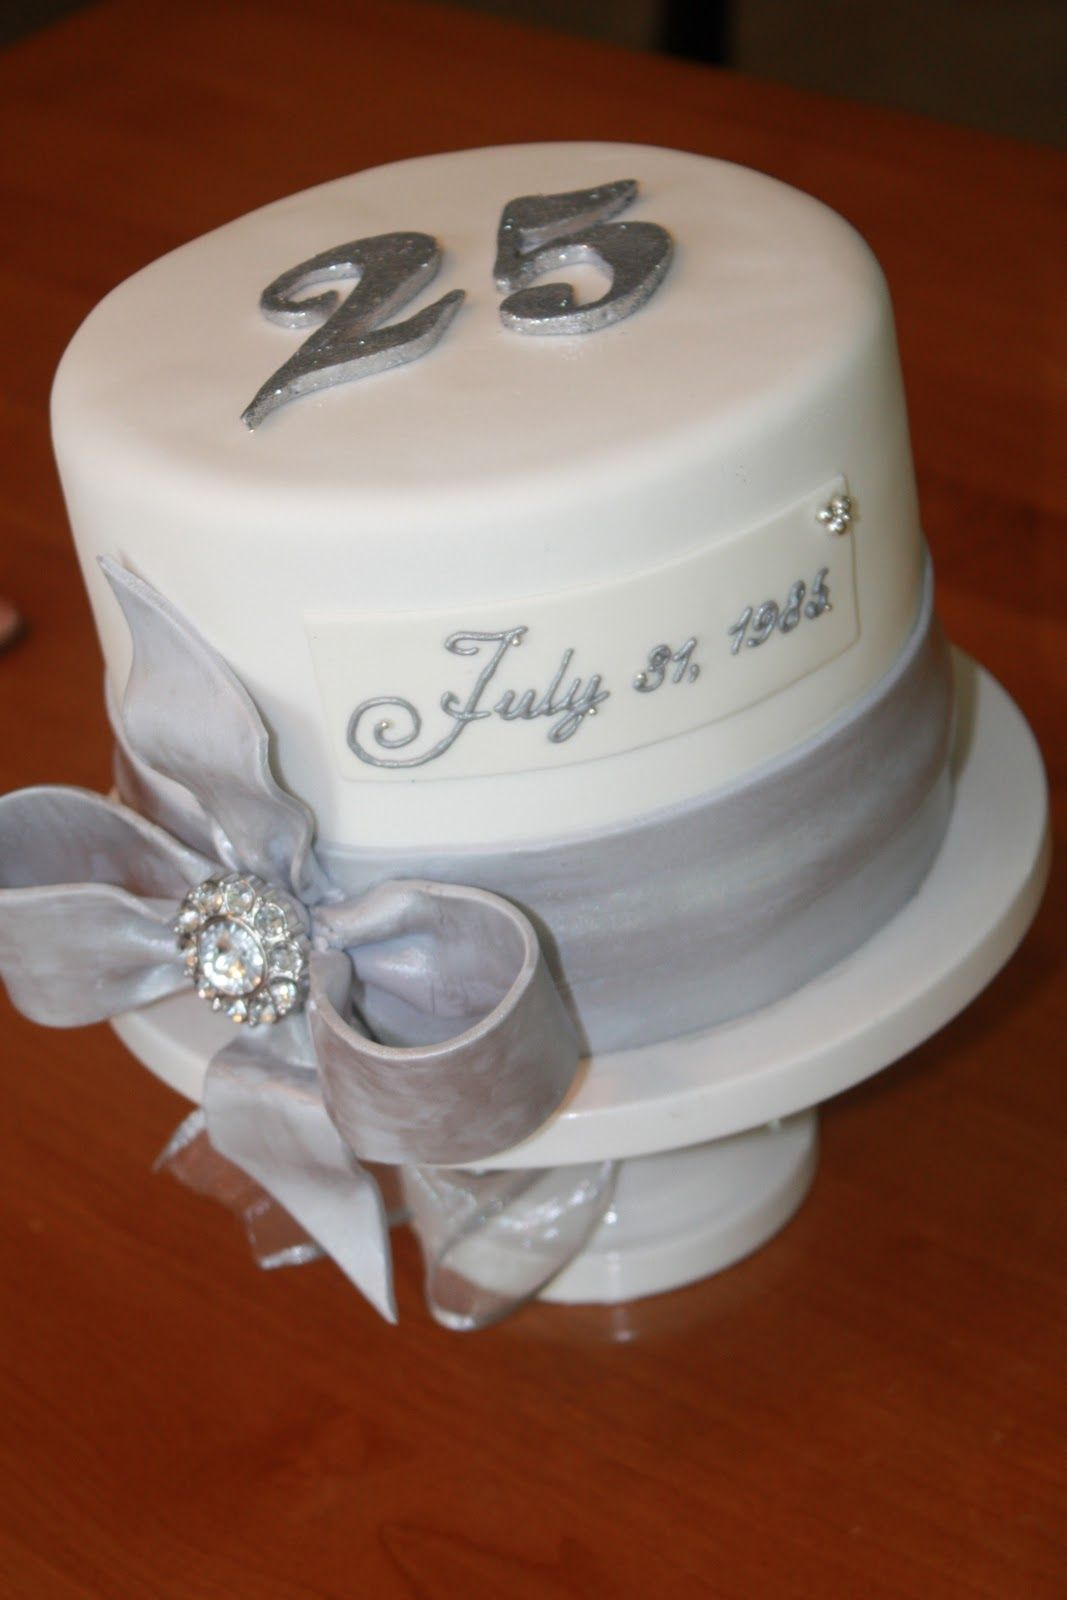 Like This 25 For My Parents 30 For His Mini Cakes At The